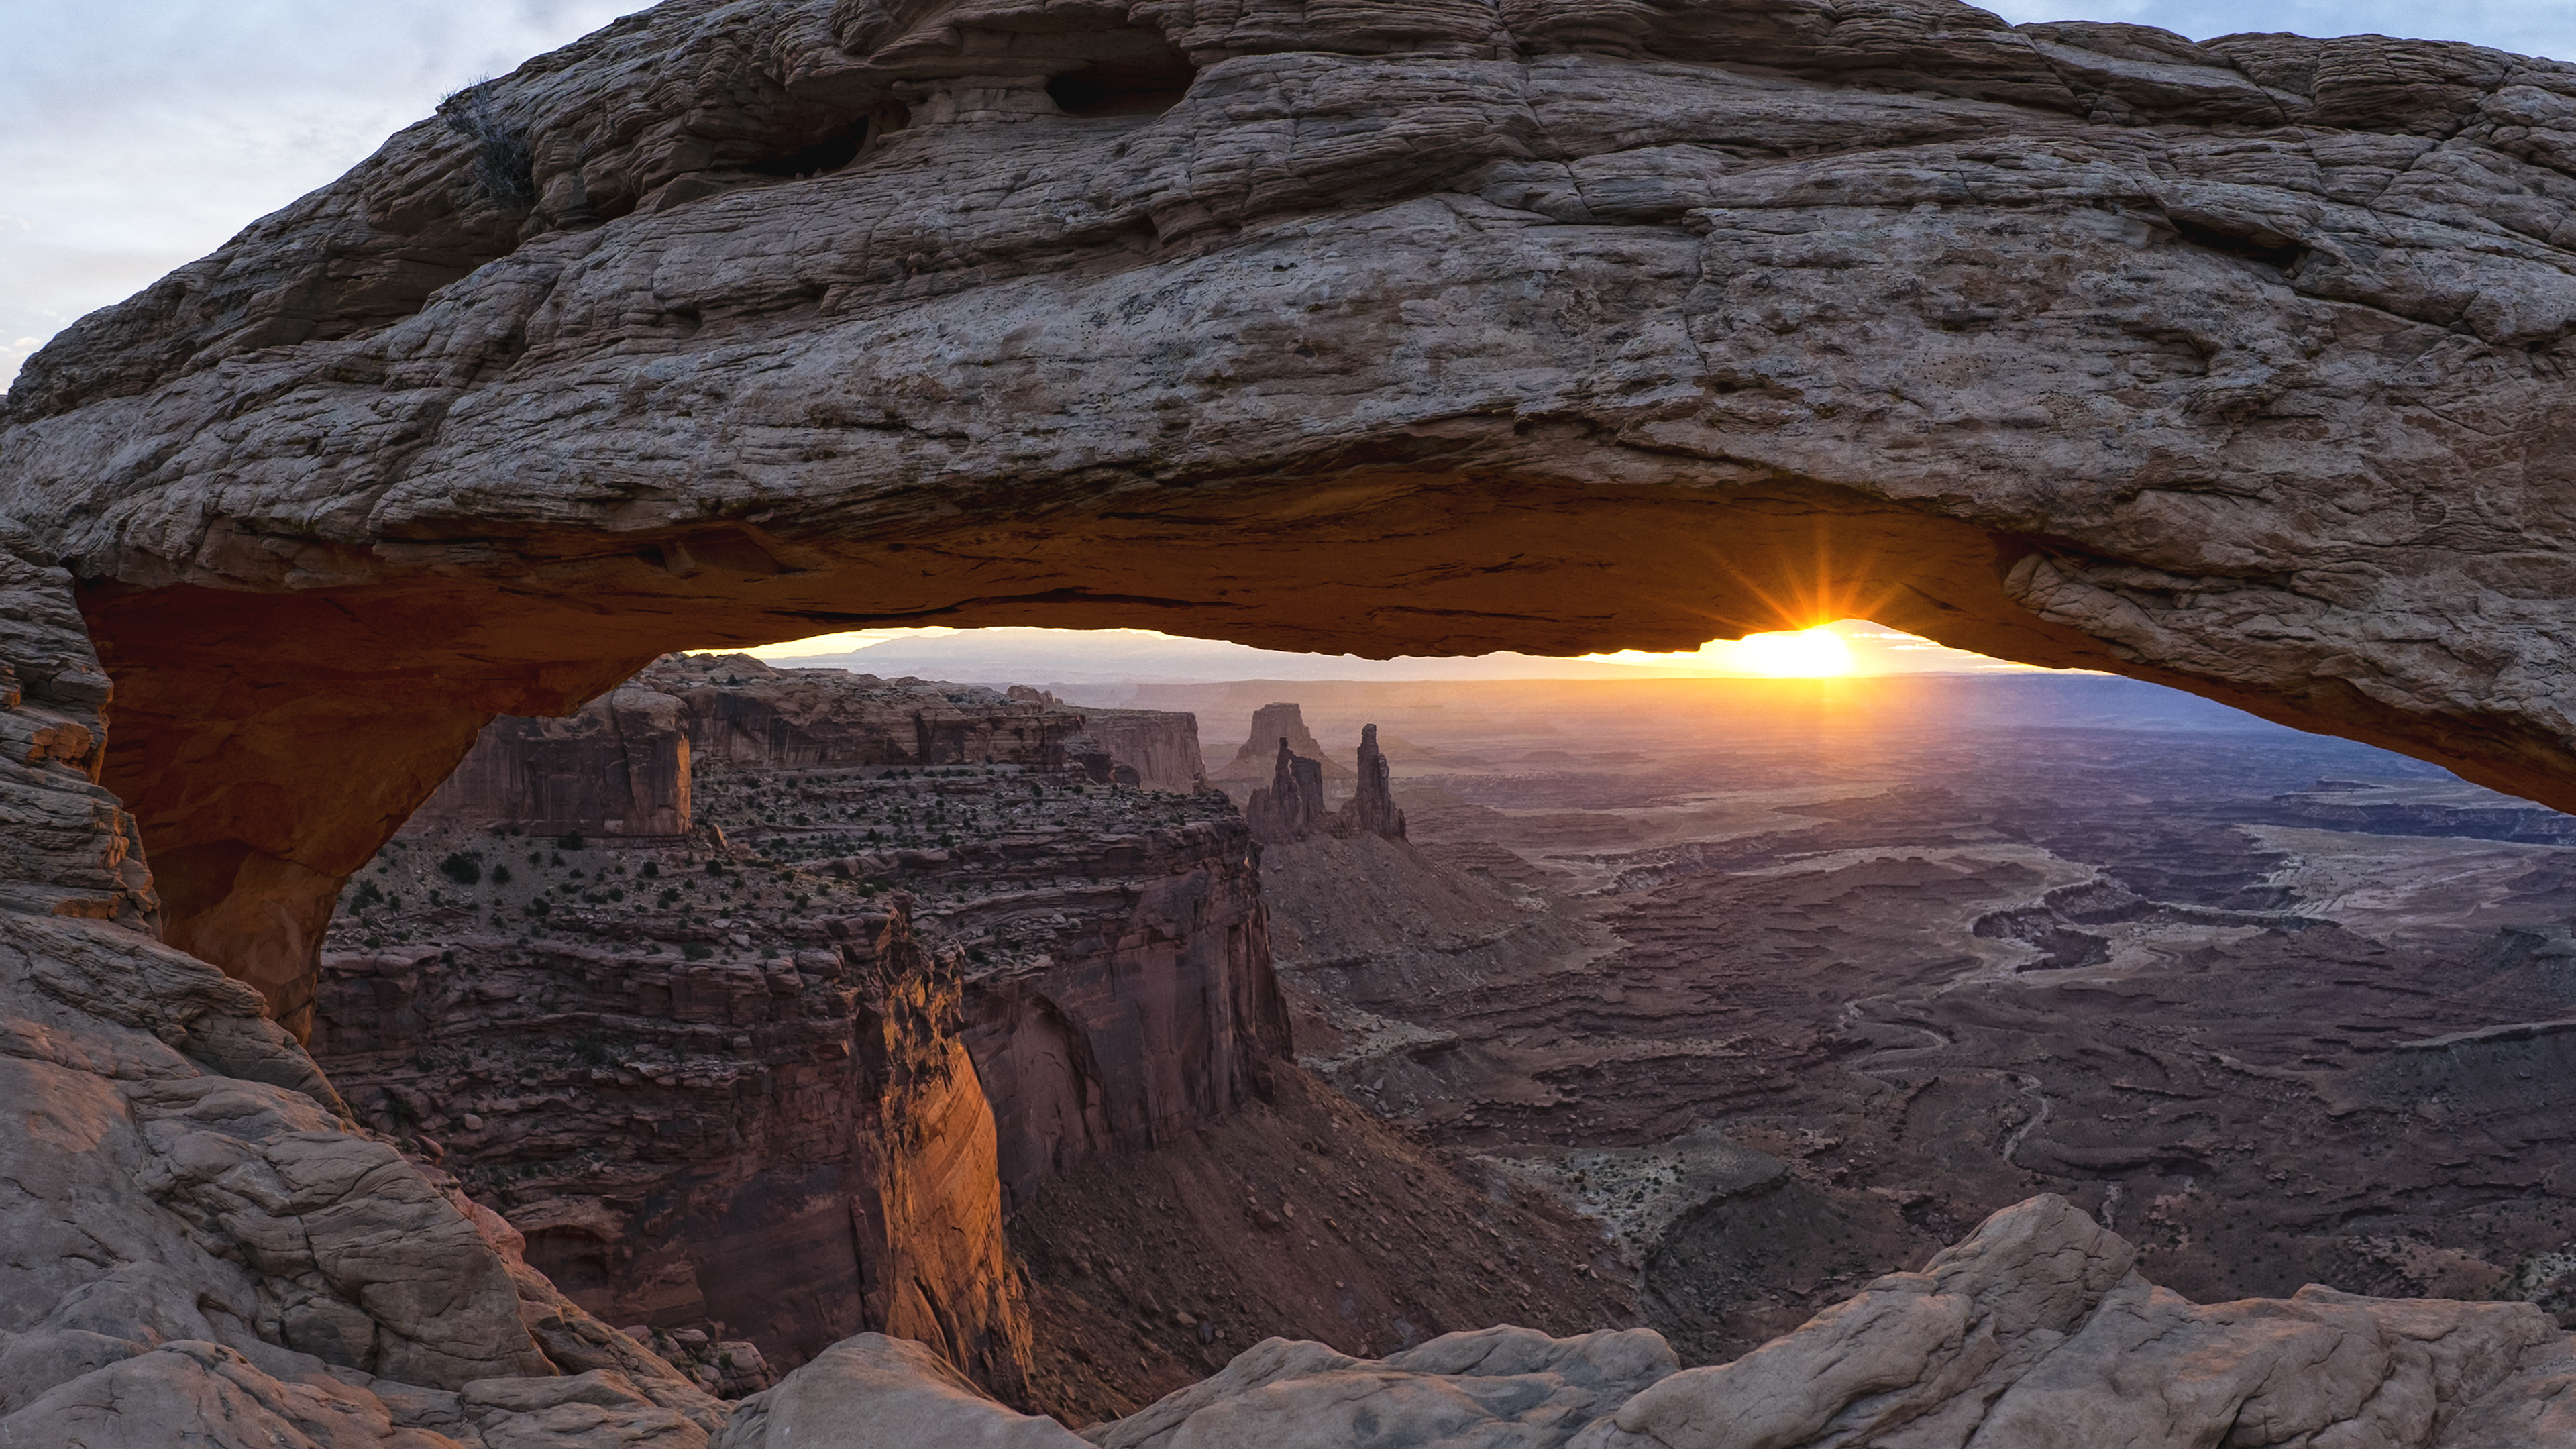 mesa arch sunrise 4k wallpaper background